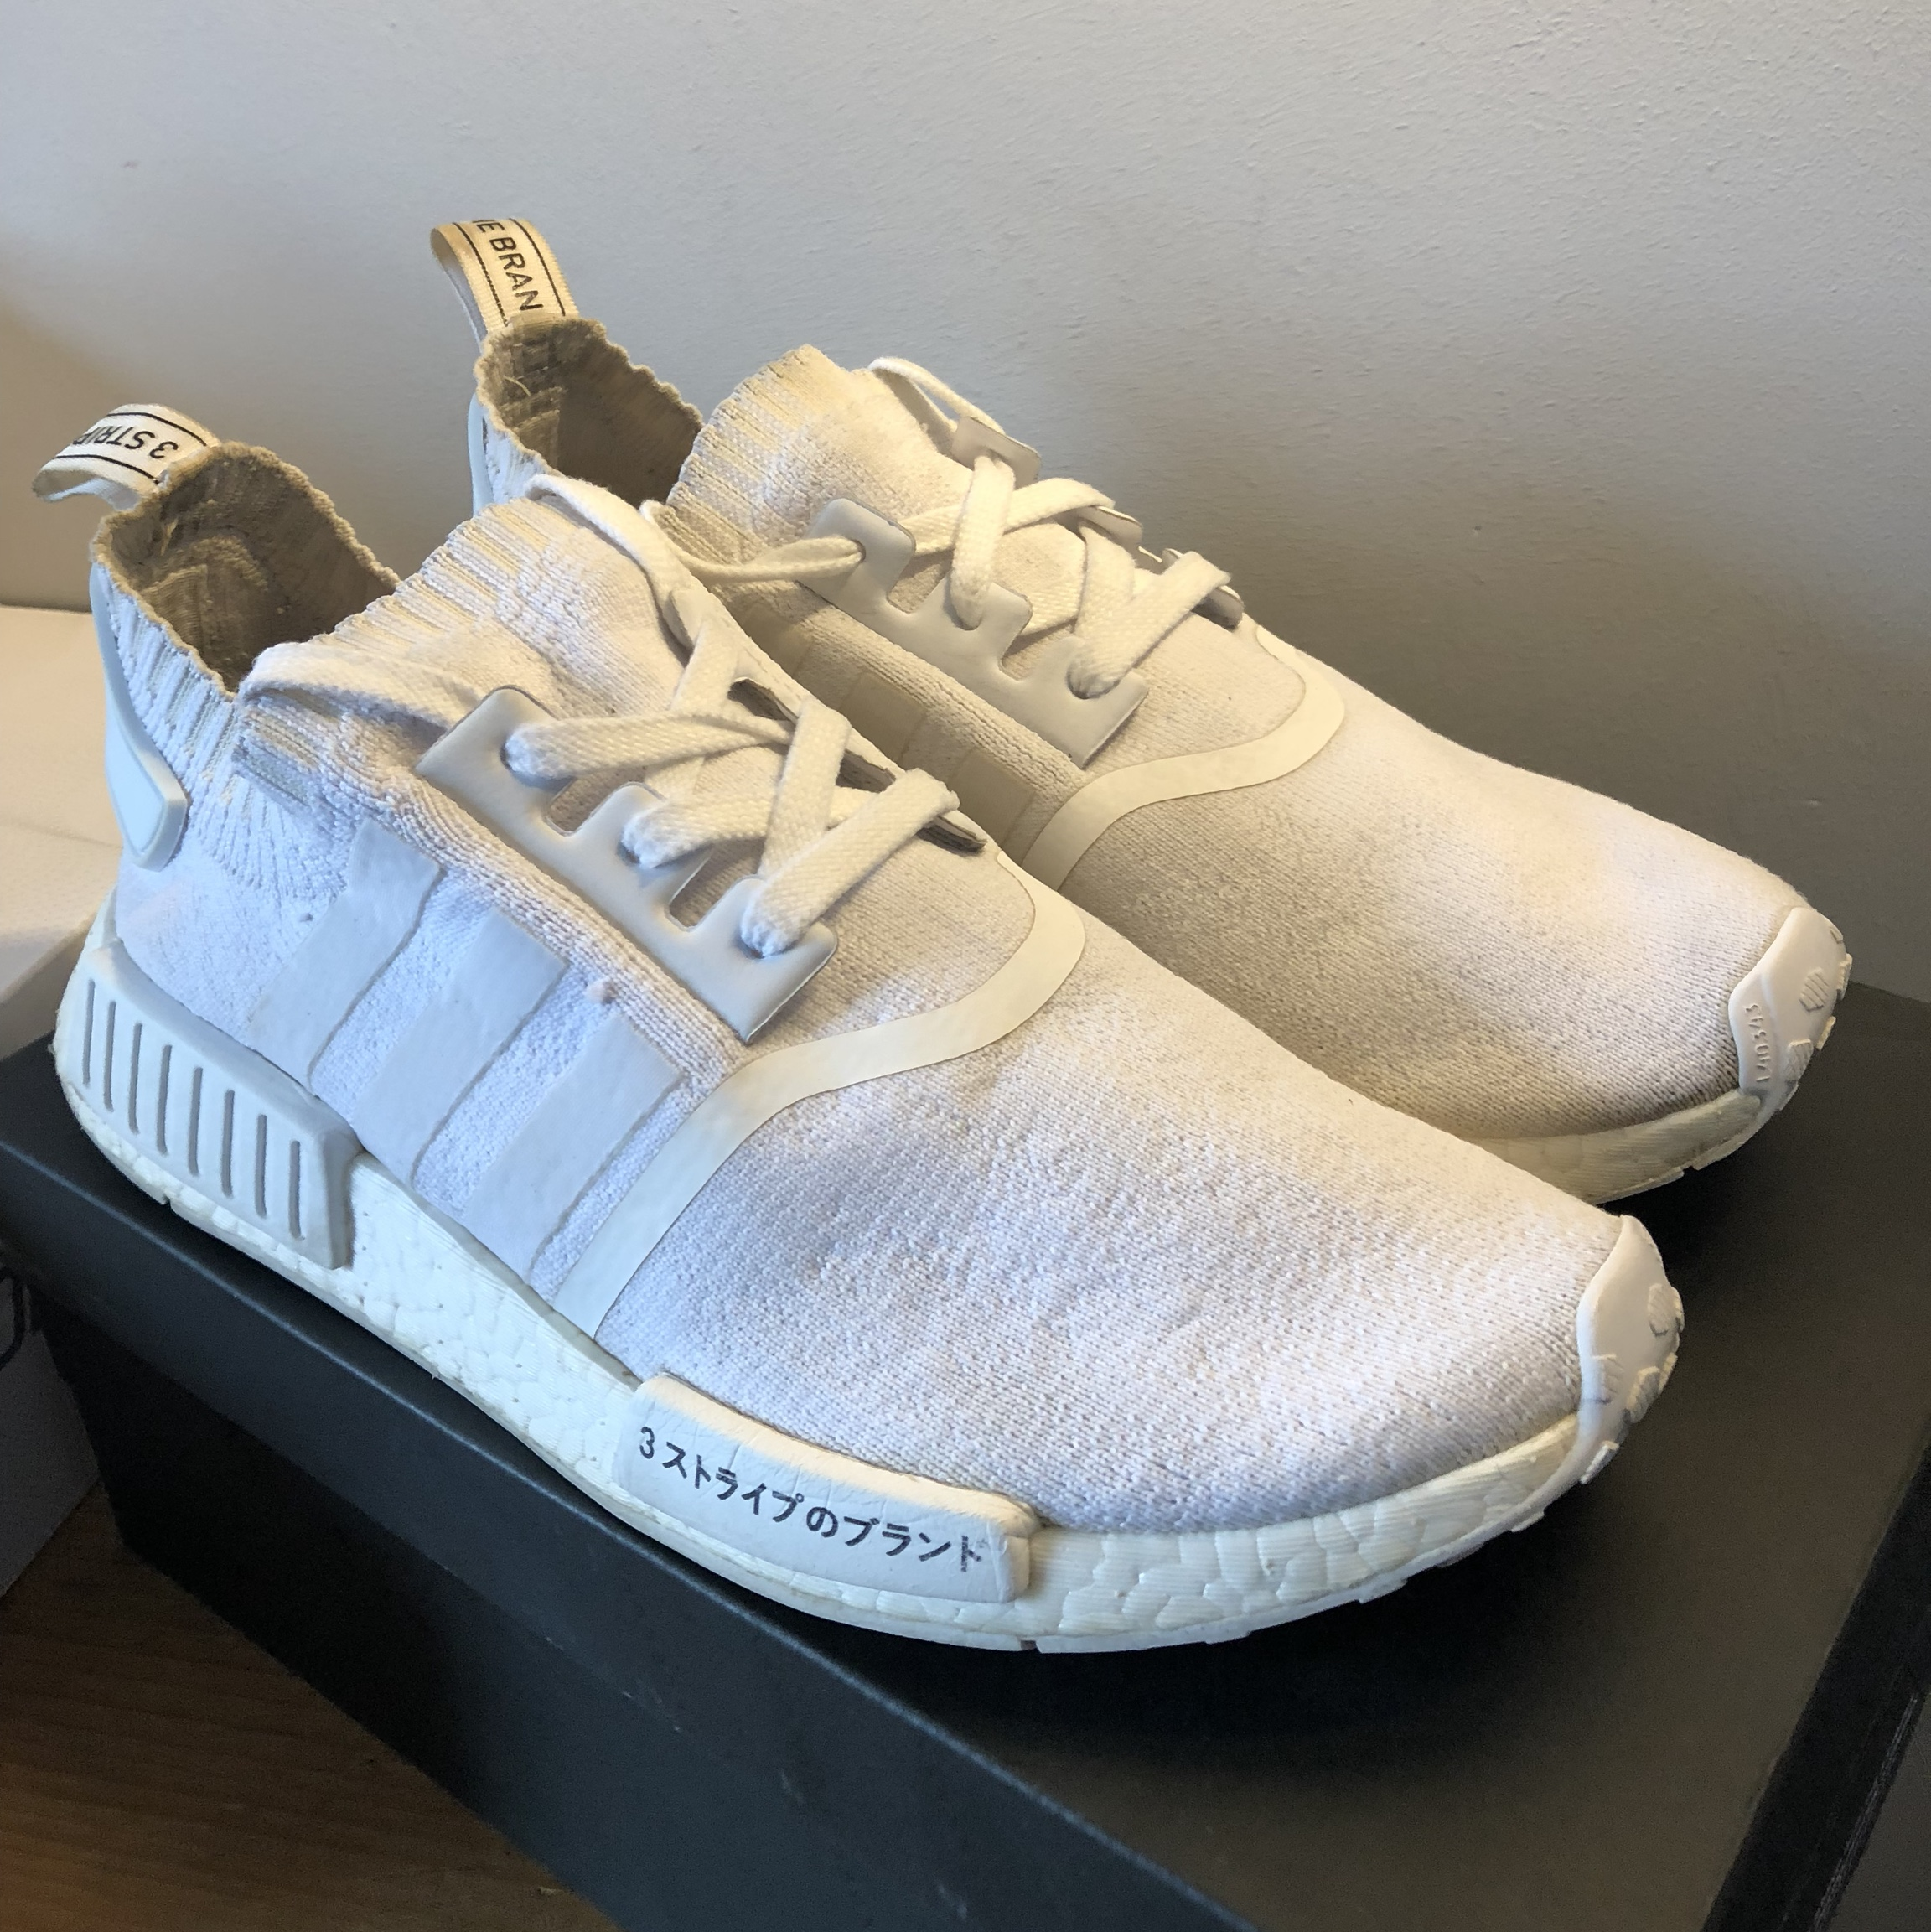 Mens Adidas Nmd R1 Primeknit Japan Trainer Good Depop